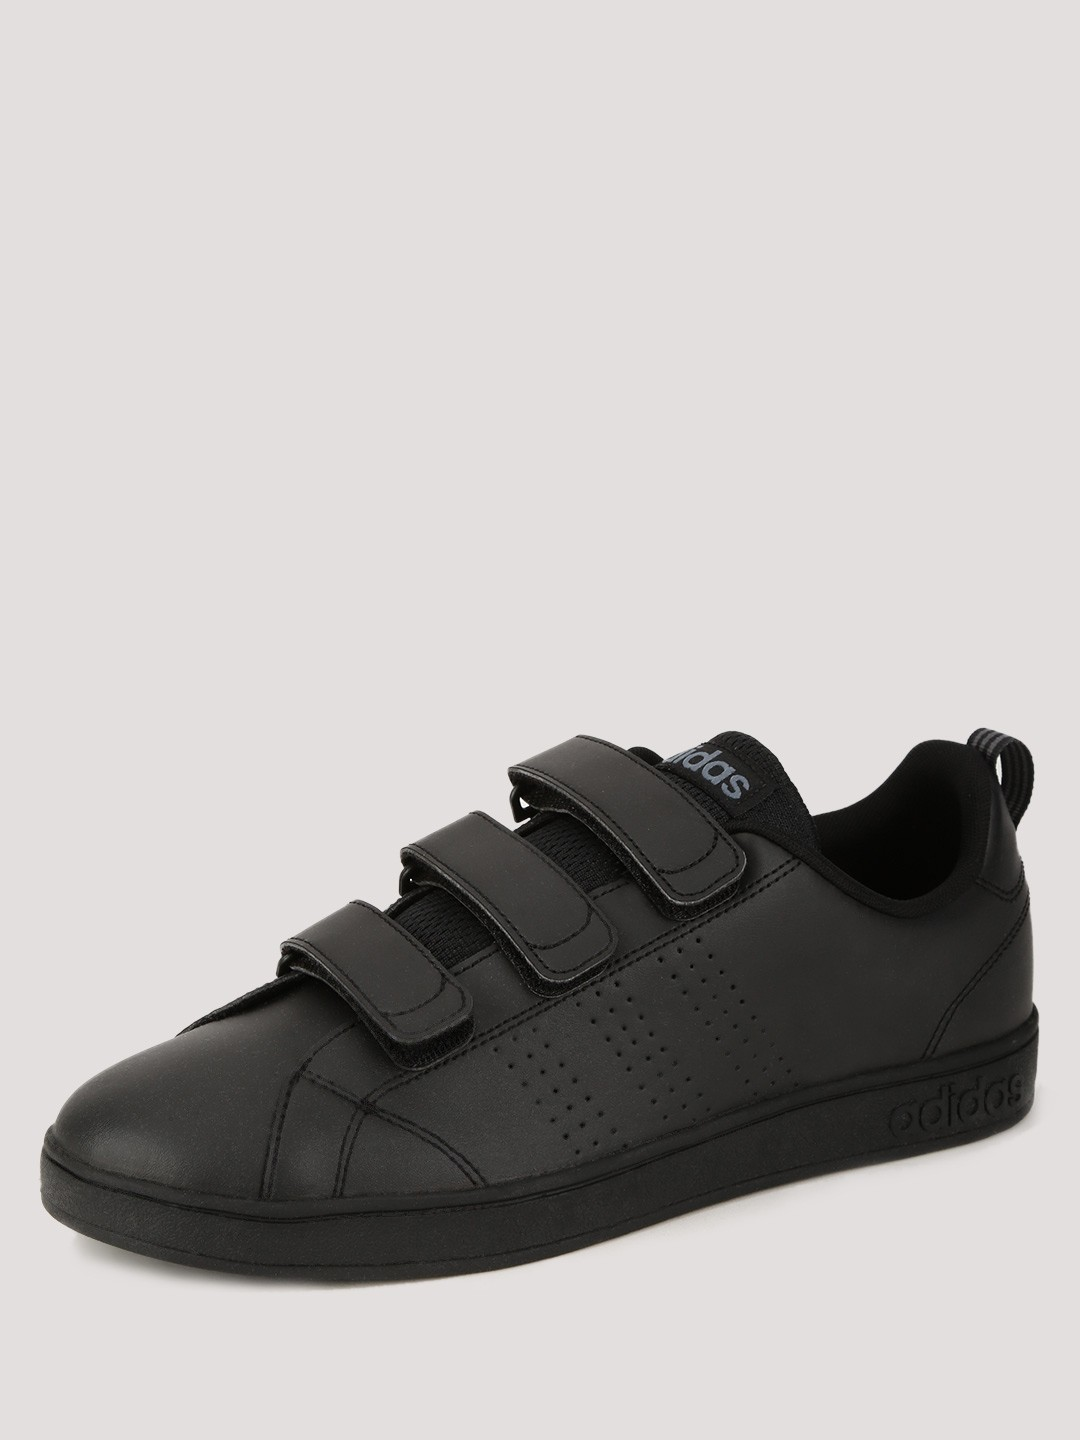 new products 92a49 ea2e3 ... Buy ADIDAS NEO Advantage Clean Synthetic Leather Shoes For ... Adidas  Neo Black Leather ...